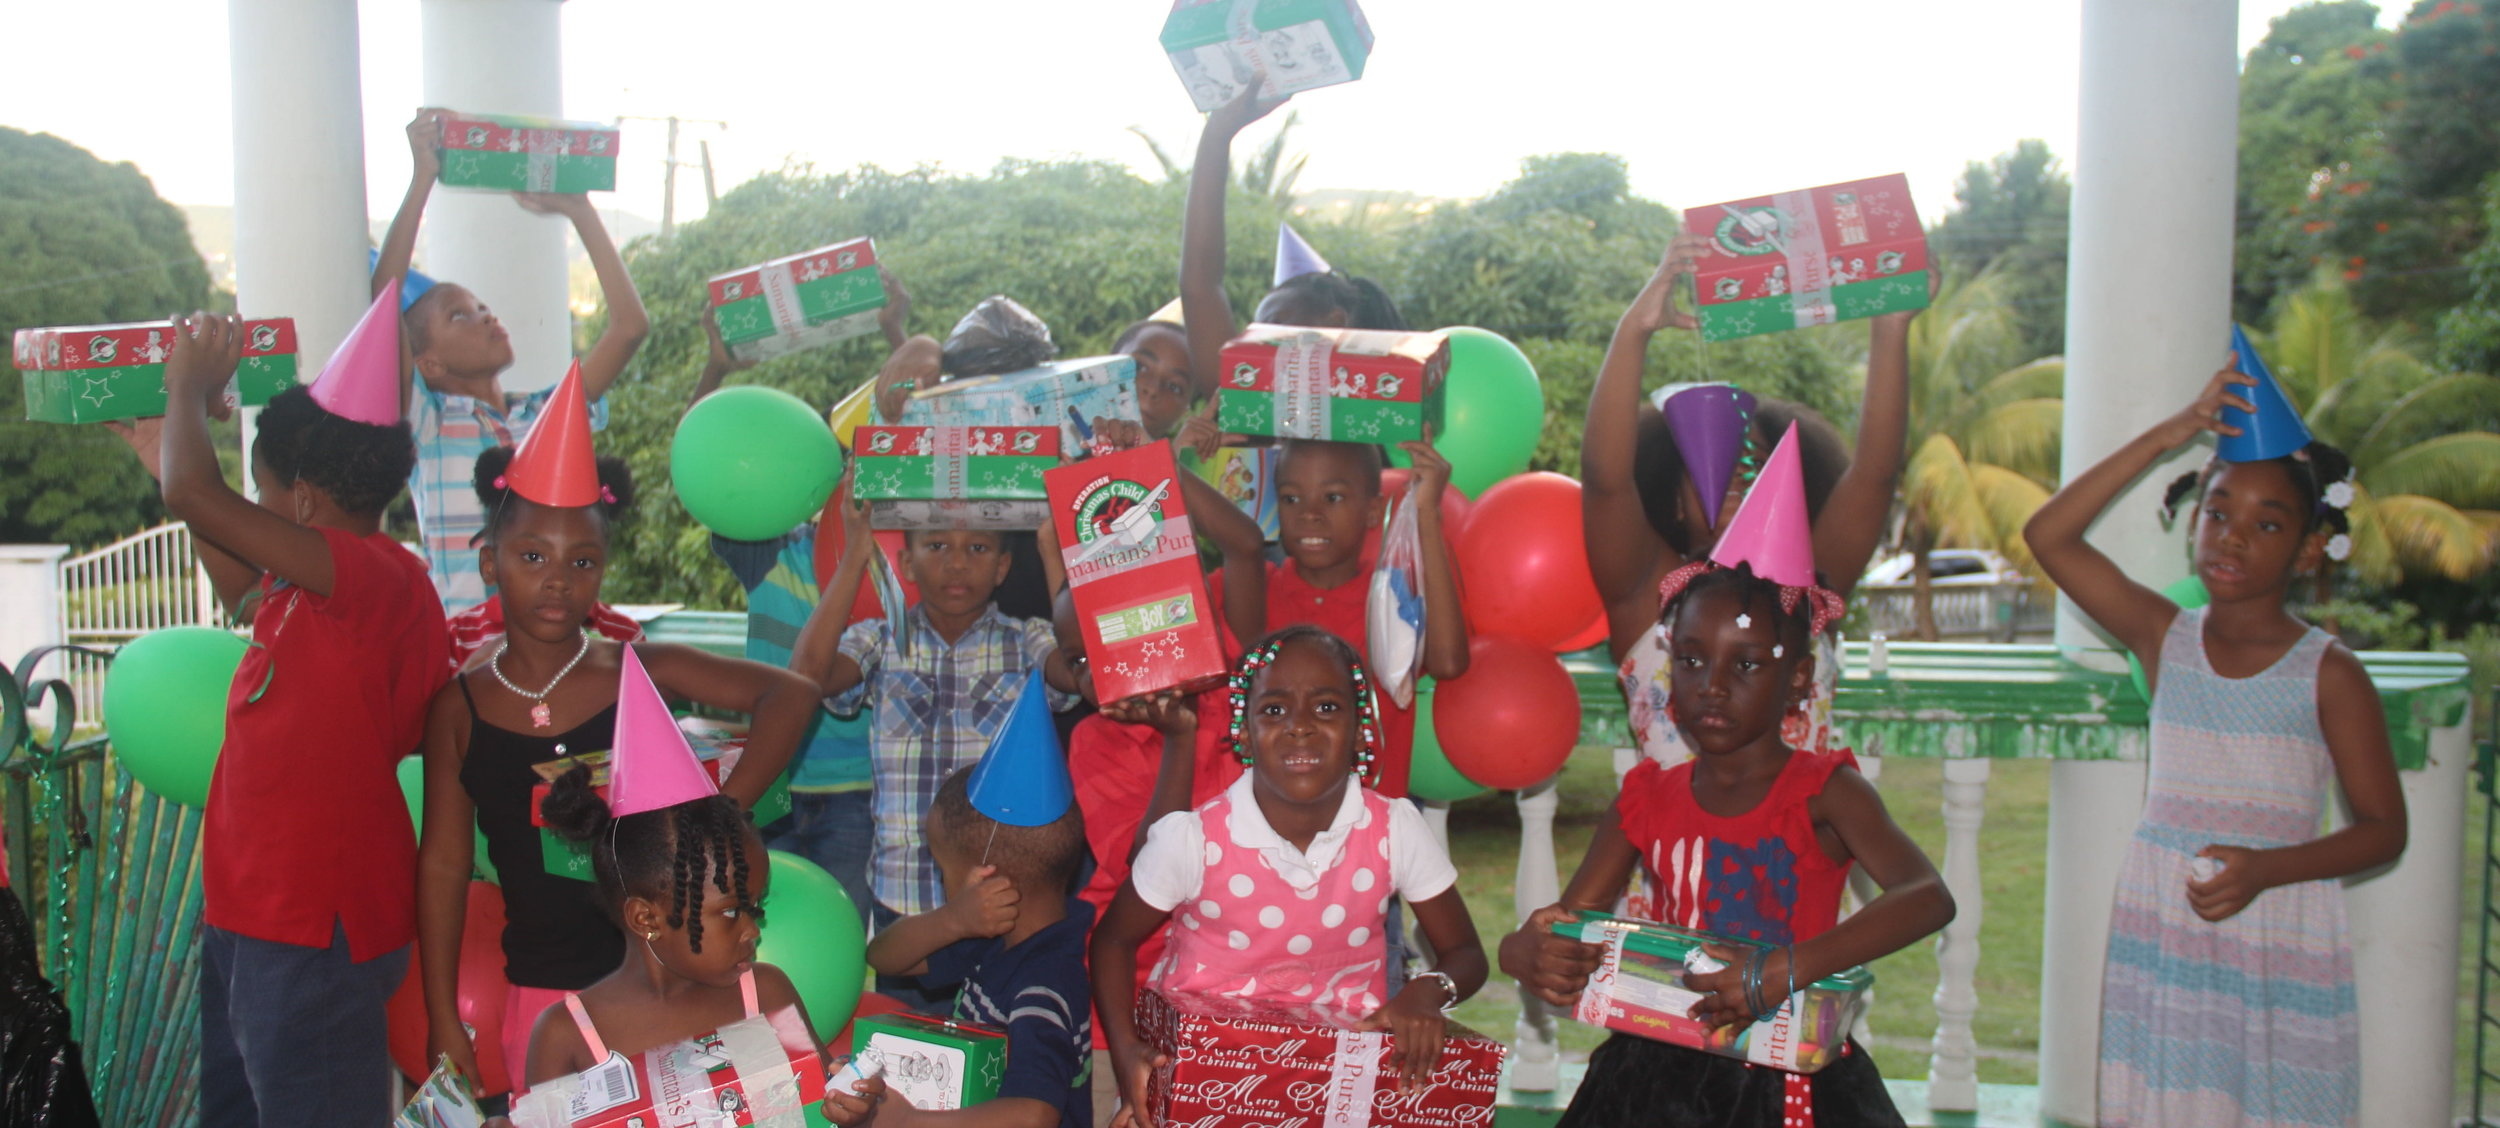 Kids from our kids club got gifts donated by Operation Christmas Child, of Samaritan's Purse